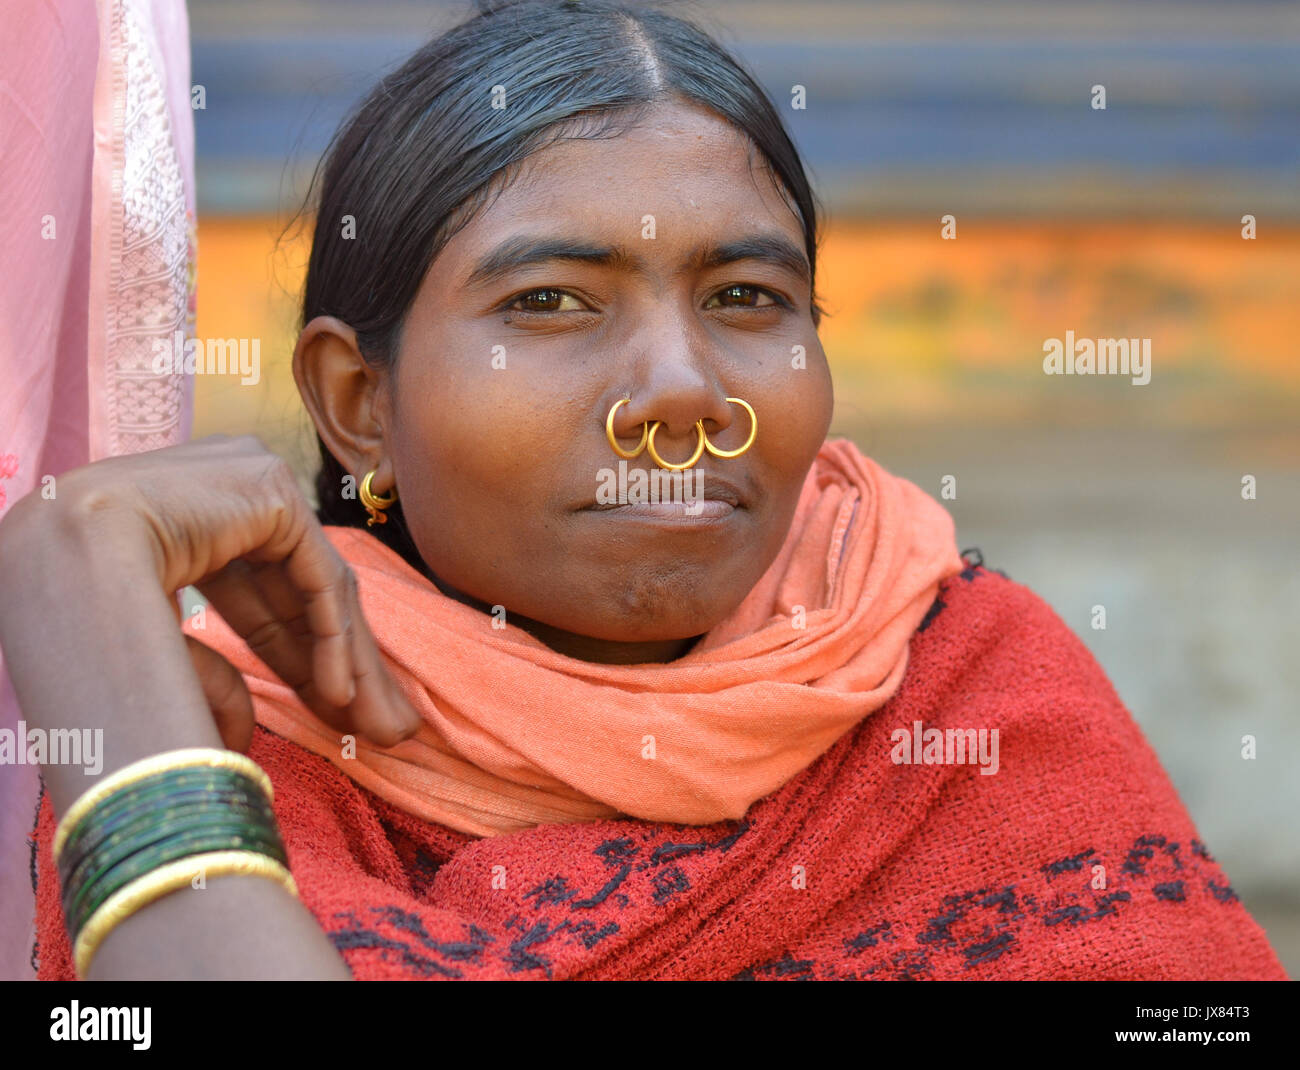 Closeup street portrait (outdoor headshot, three-quarter view) of a young Indian Adivasi market woman with three - Stock Image